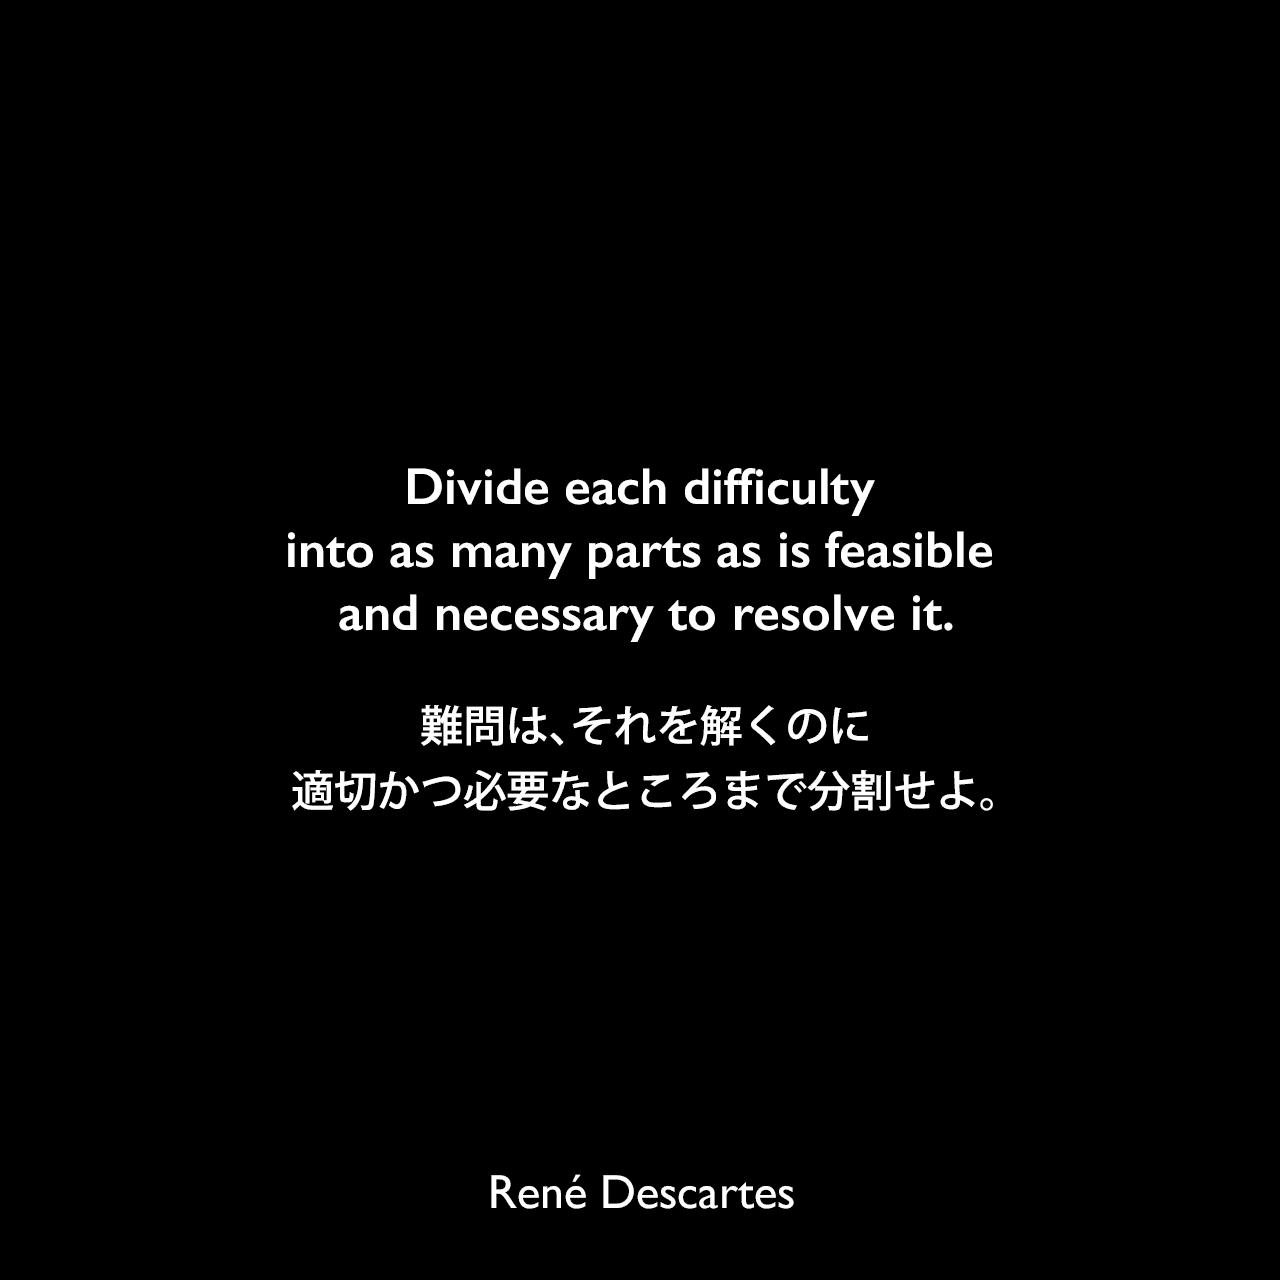 Divide each difficulty into as many parts as is feasible and necessary to resolve it.難問は、それを解くのに適切かつ必要なところまで分割せよ。René Descartes